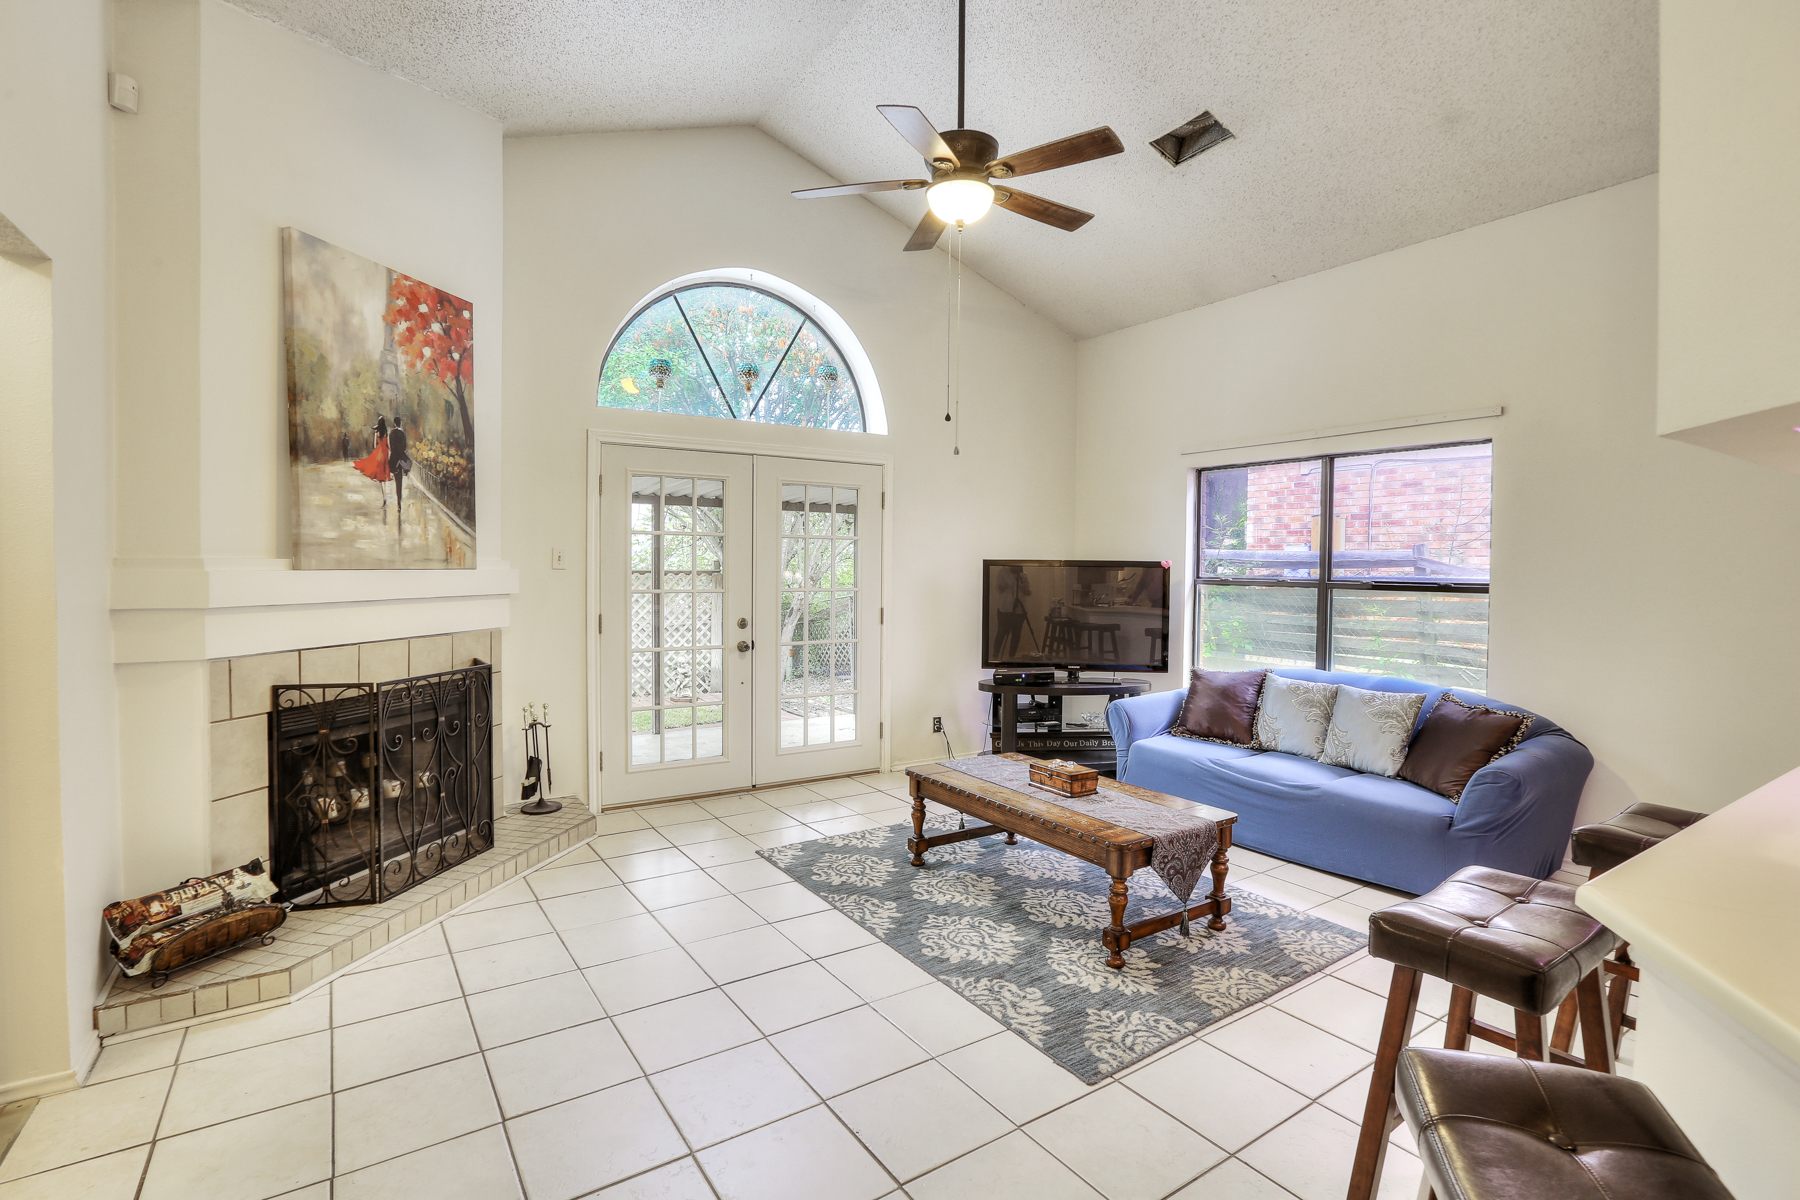 Additional photo for property listing at Beautiful Single-Story Home in Heritage Northwest 10342 Rustic Village Dr San Antonio, Texas 78245 United States